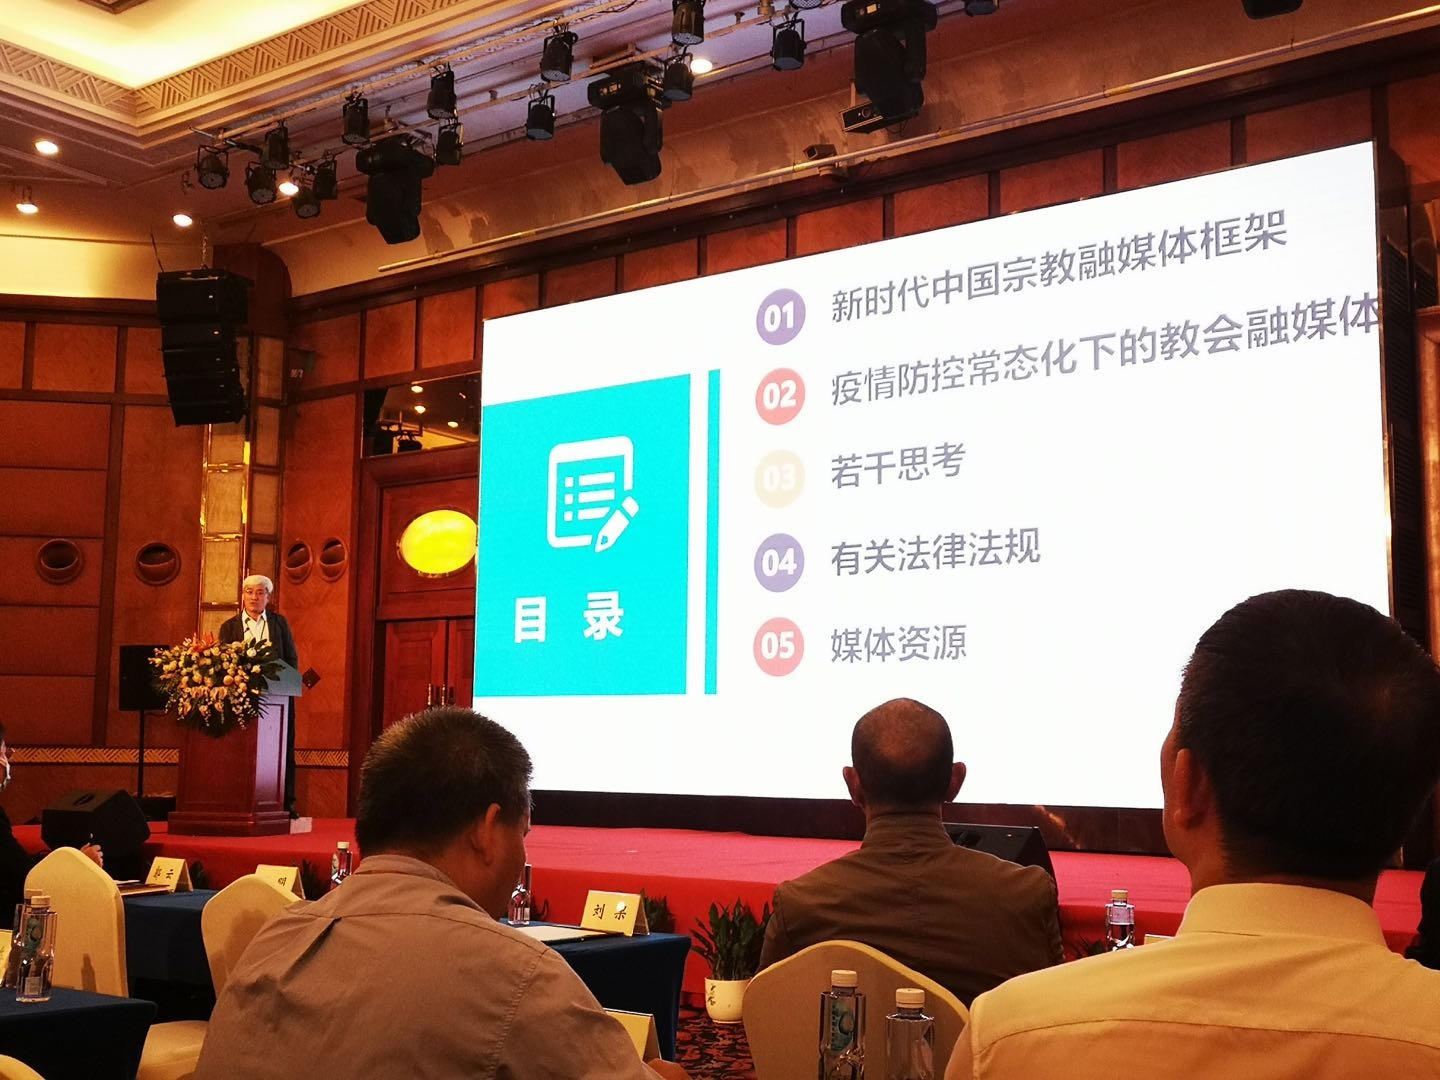 Joint Seminar for Shepherding in the Church in Shenzhen and Pearl River Delta Commences